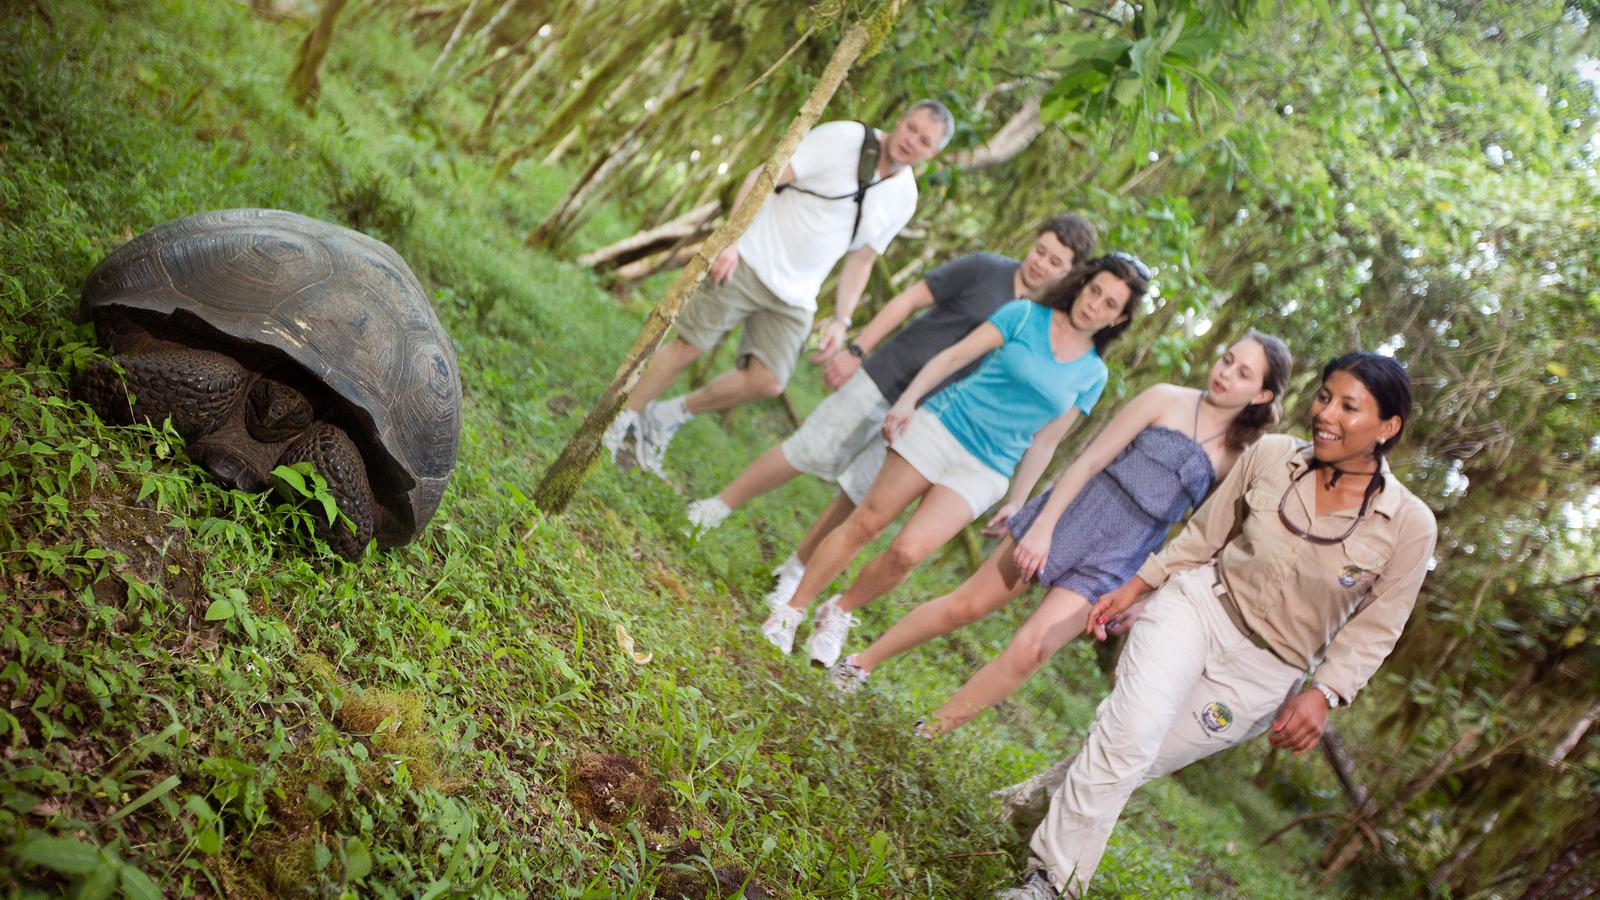 Family Land Galapagos Multi Activities In Galapagos South America